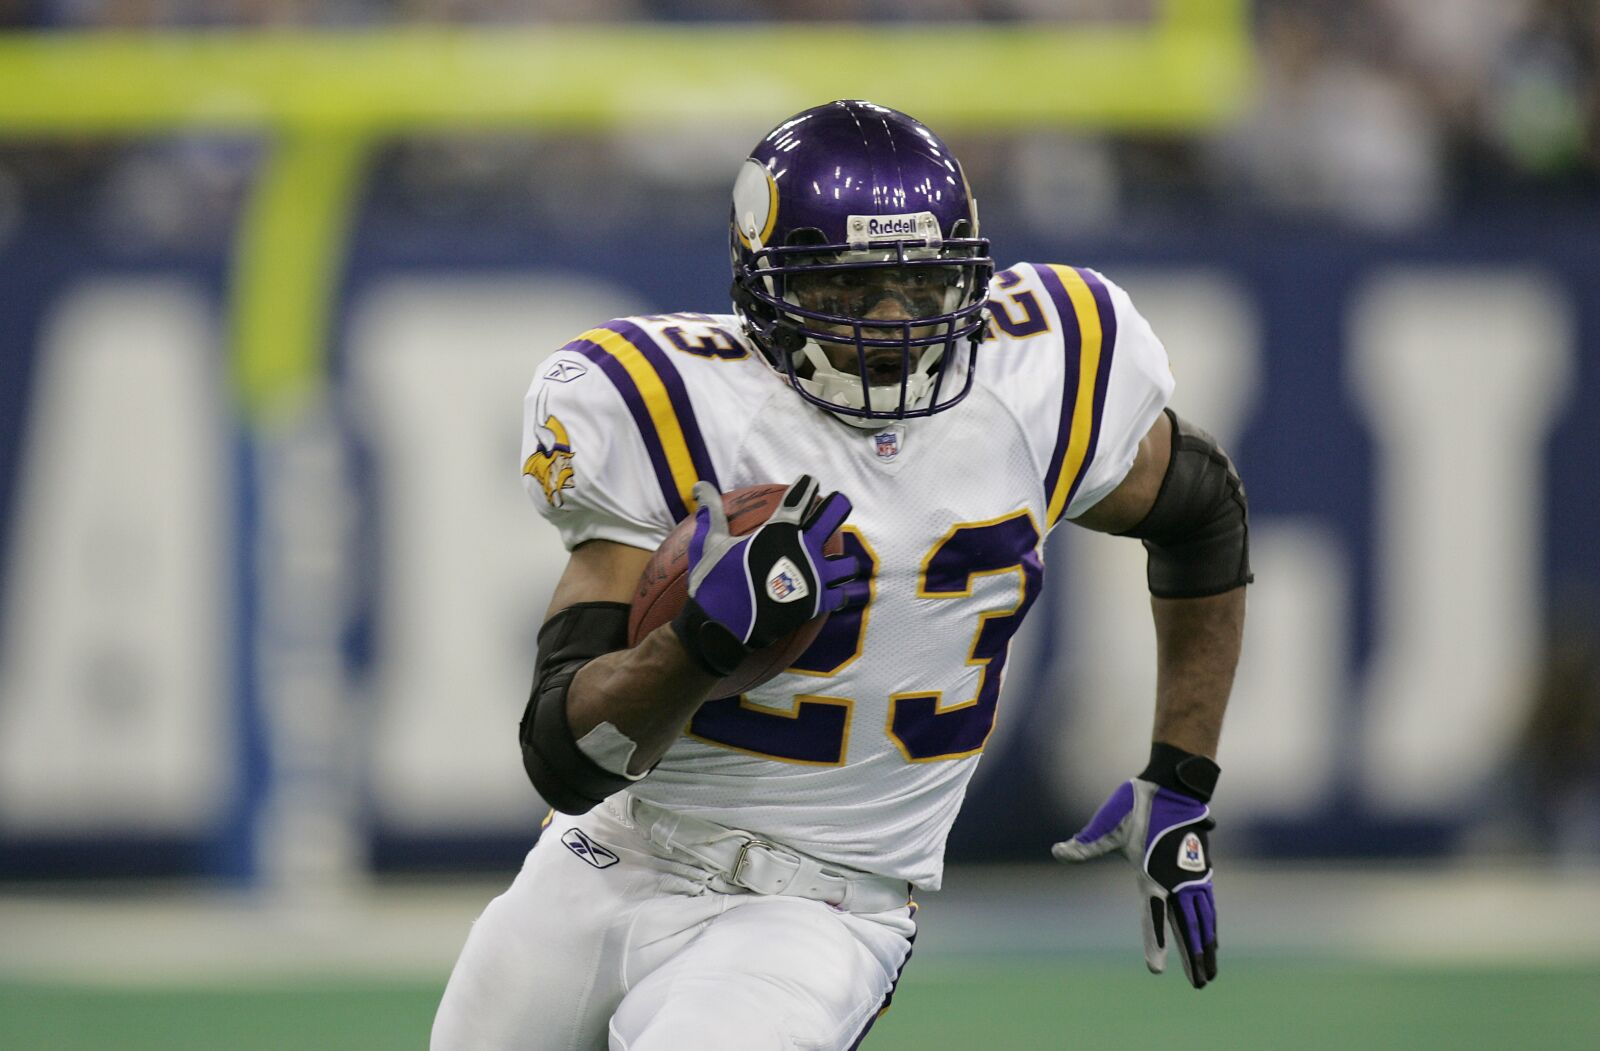 Former Vikings running back reveals he almost ended his own life